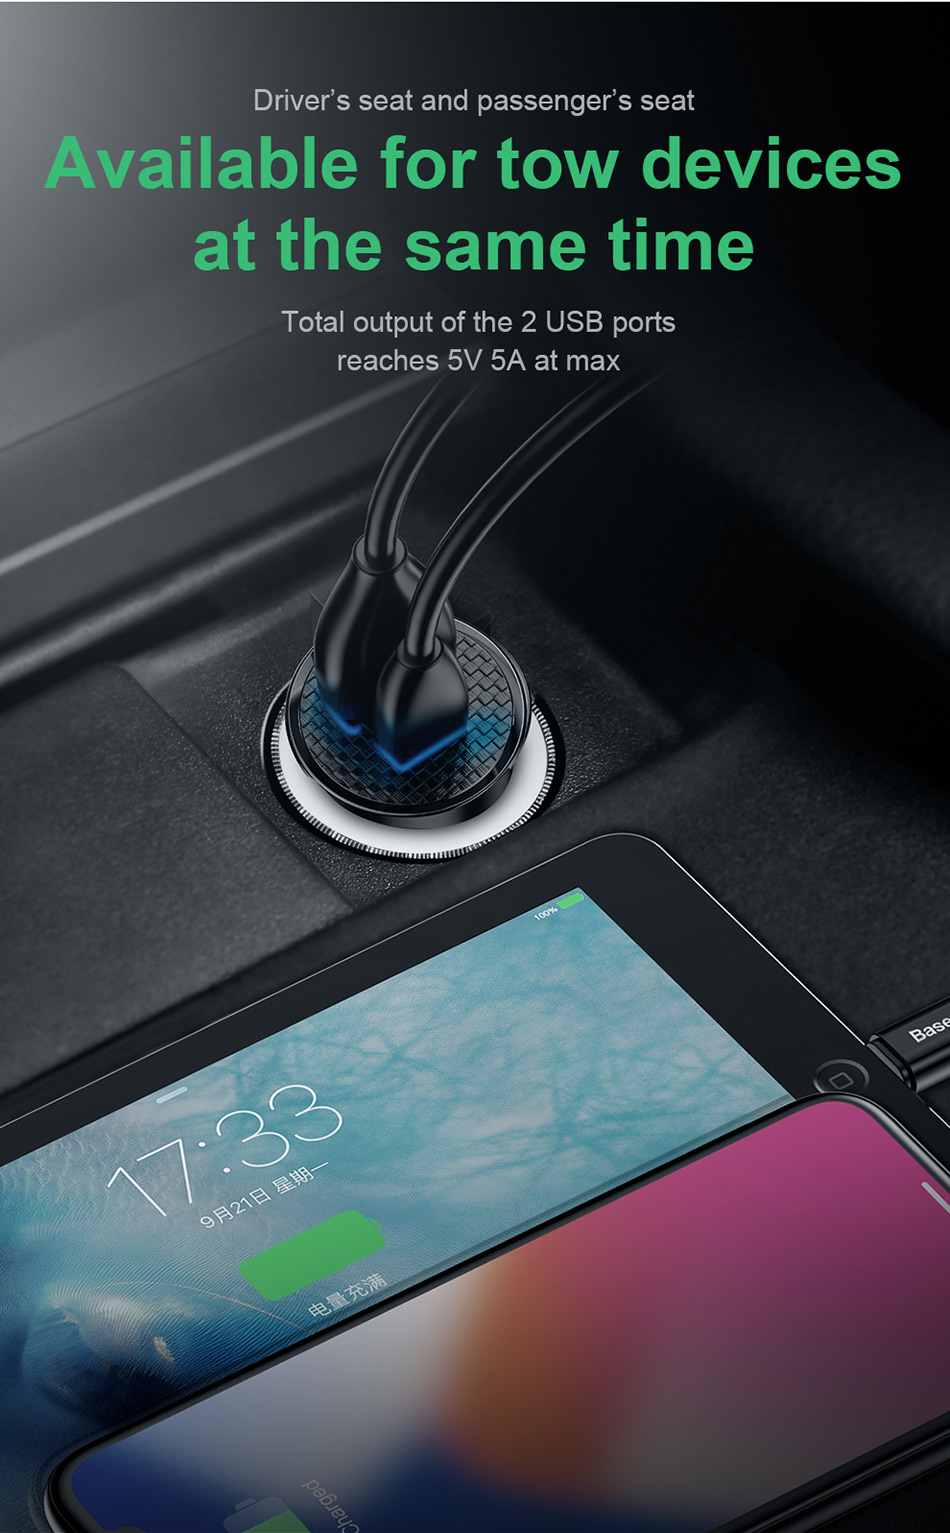 USB Car Charger 4.0 3.0